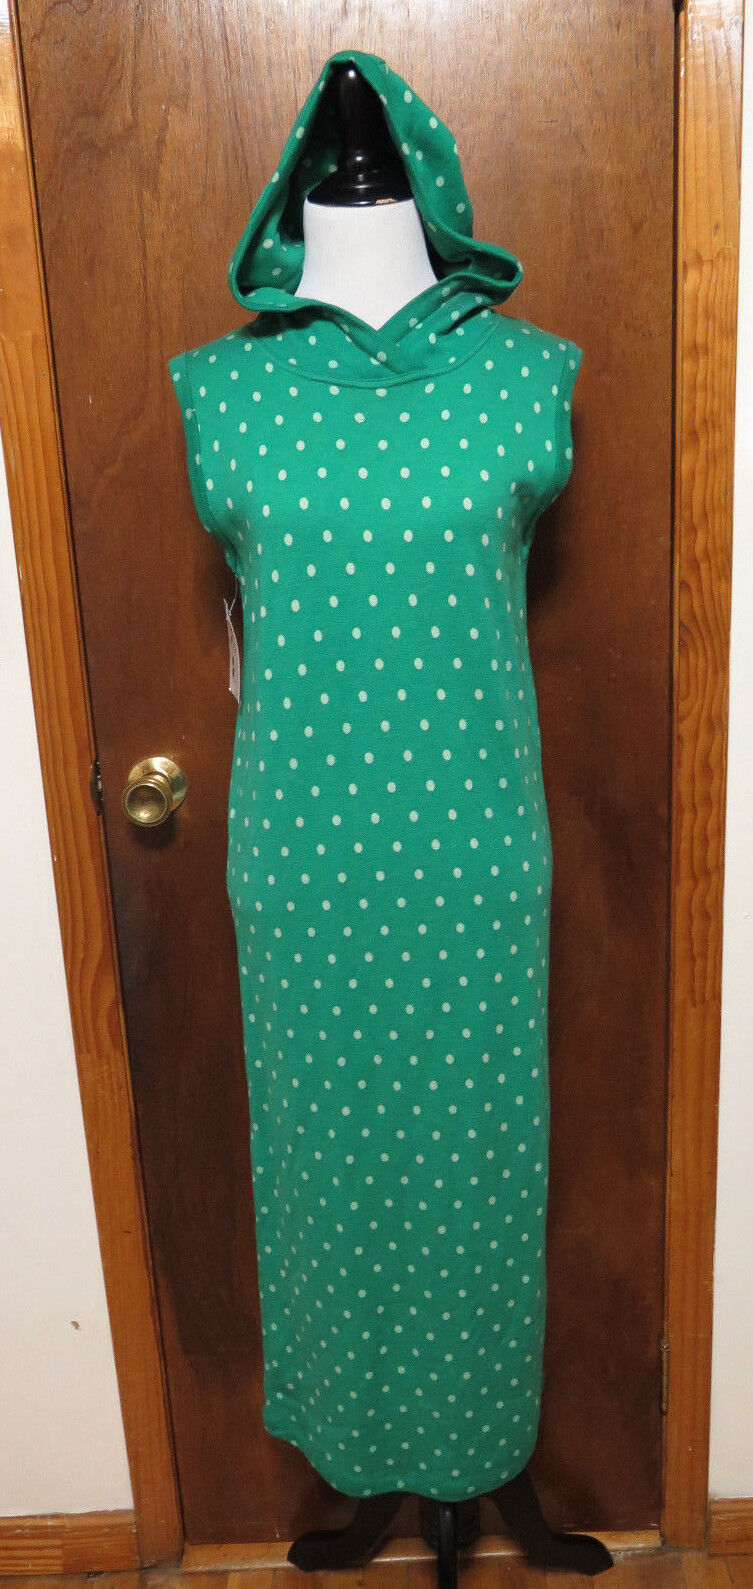 Vintage Kenzo Green Polka Dot Knit Wool Hooded Sleeveless  Shift Dress Sz M L